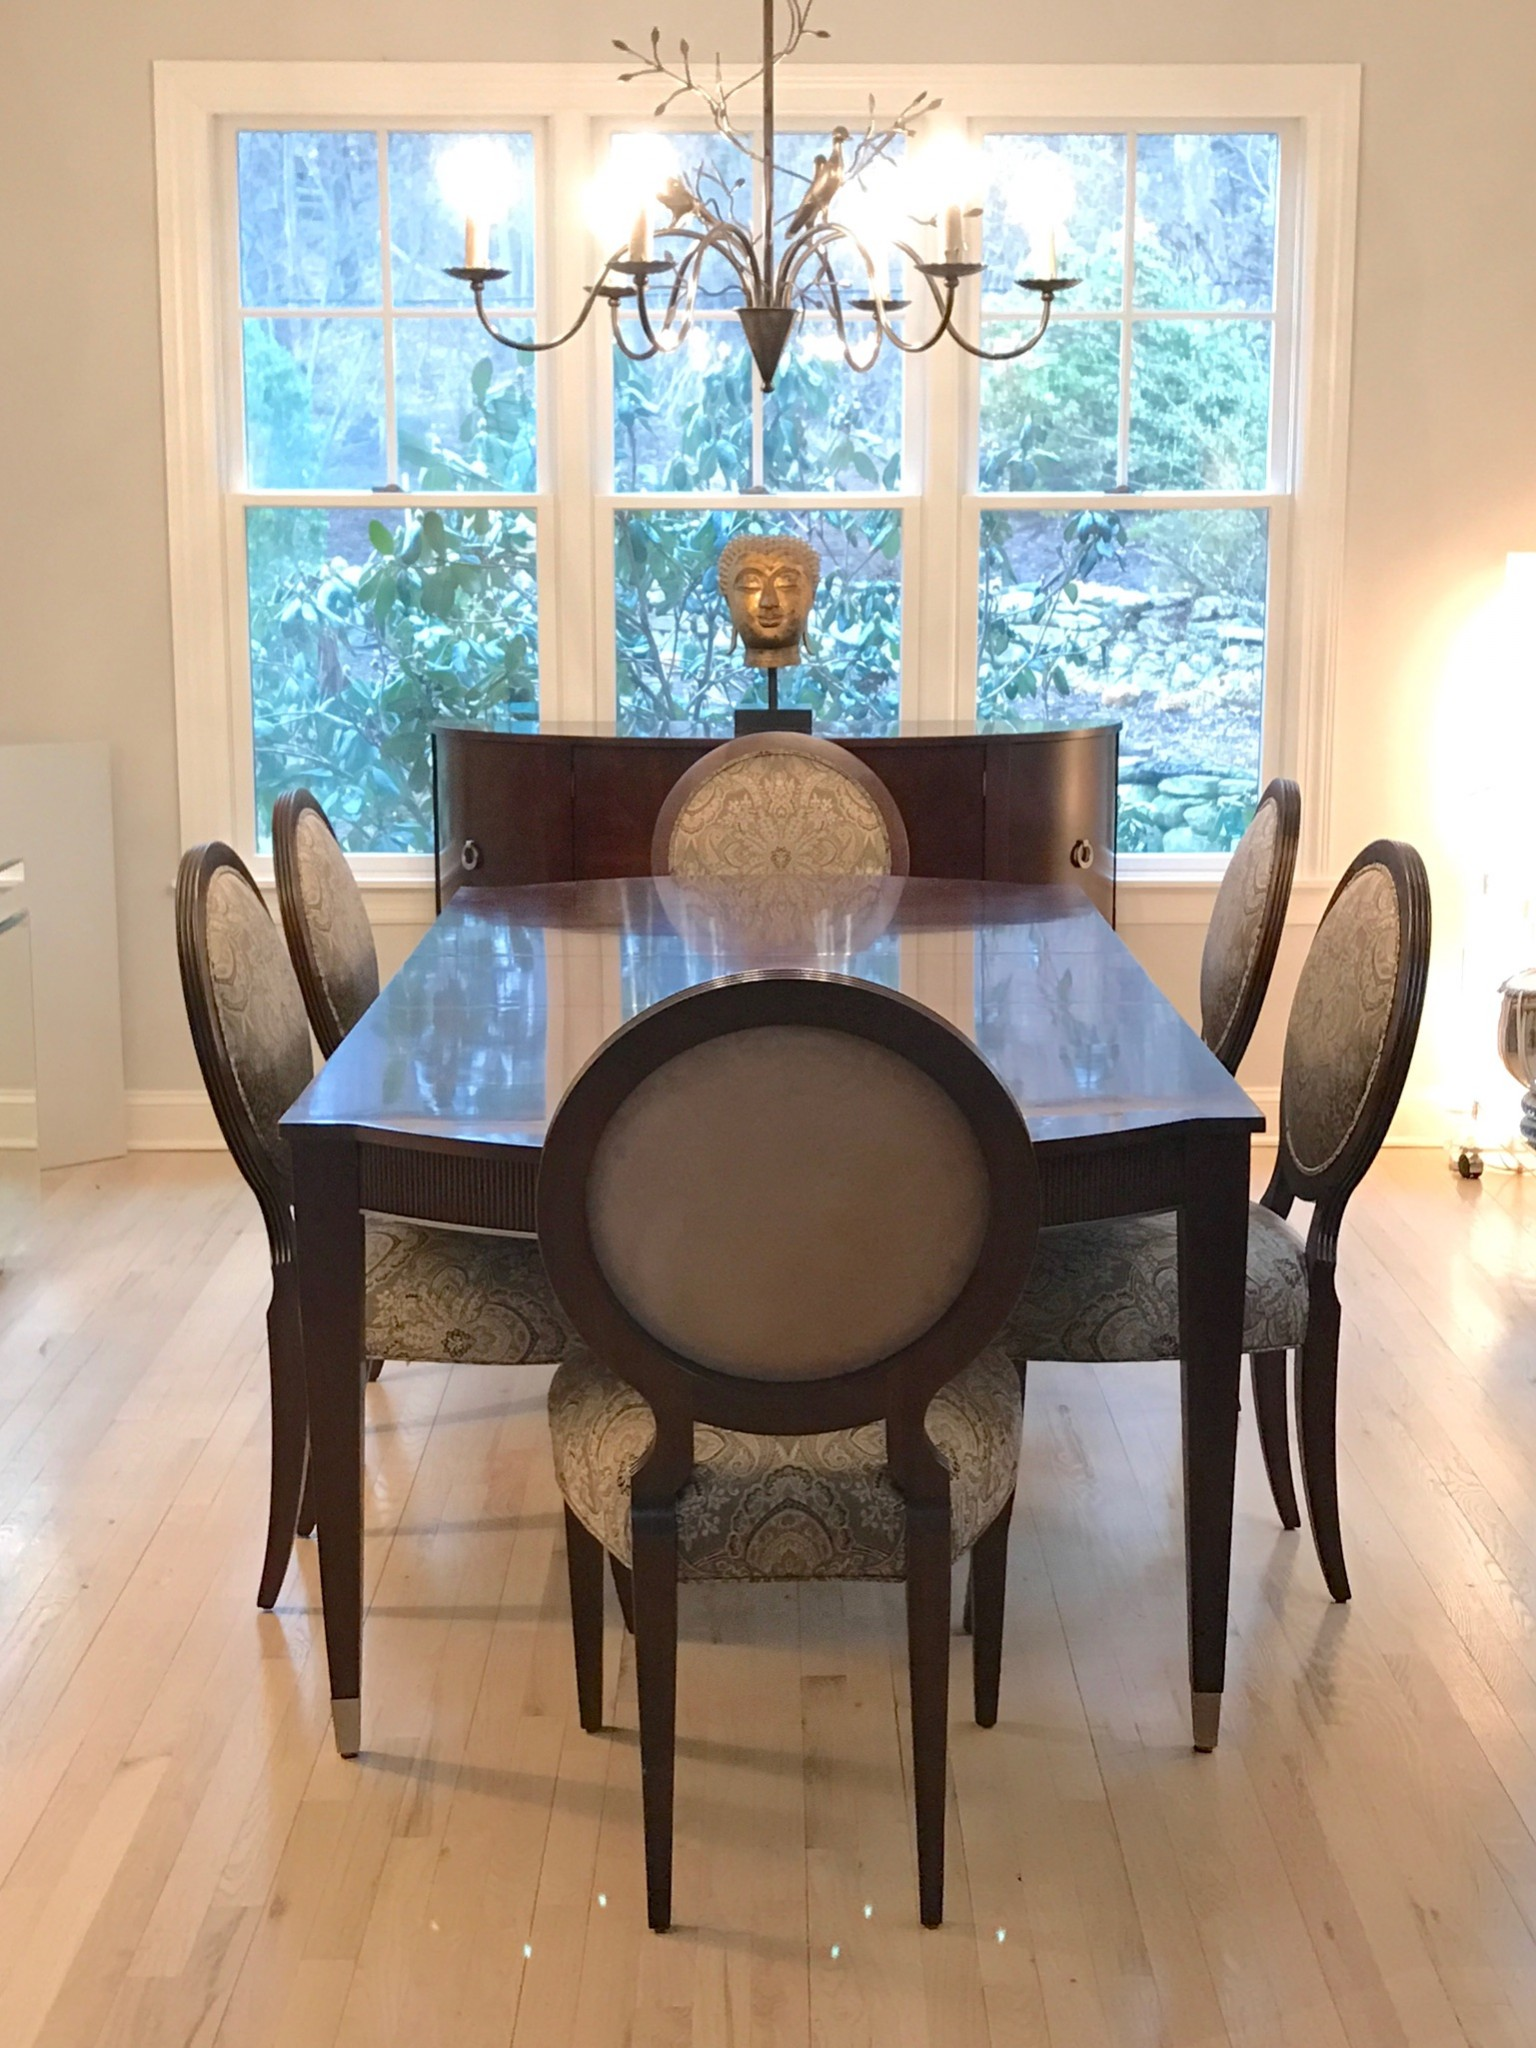 Ethan allen dining room furniture for sale at watercress for Ethan allen dining room